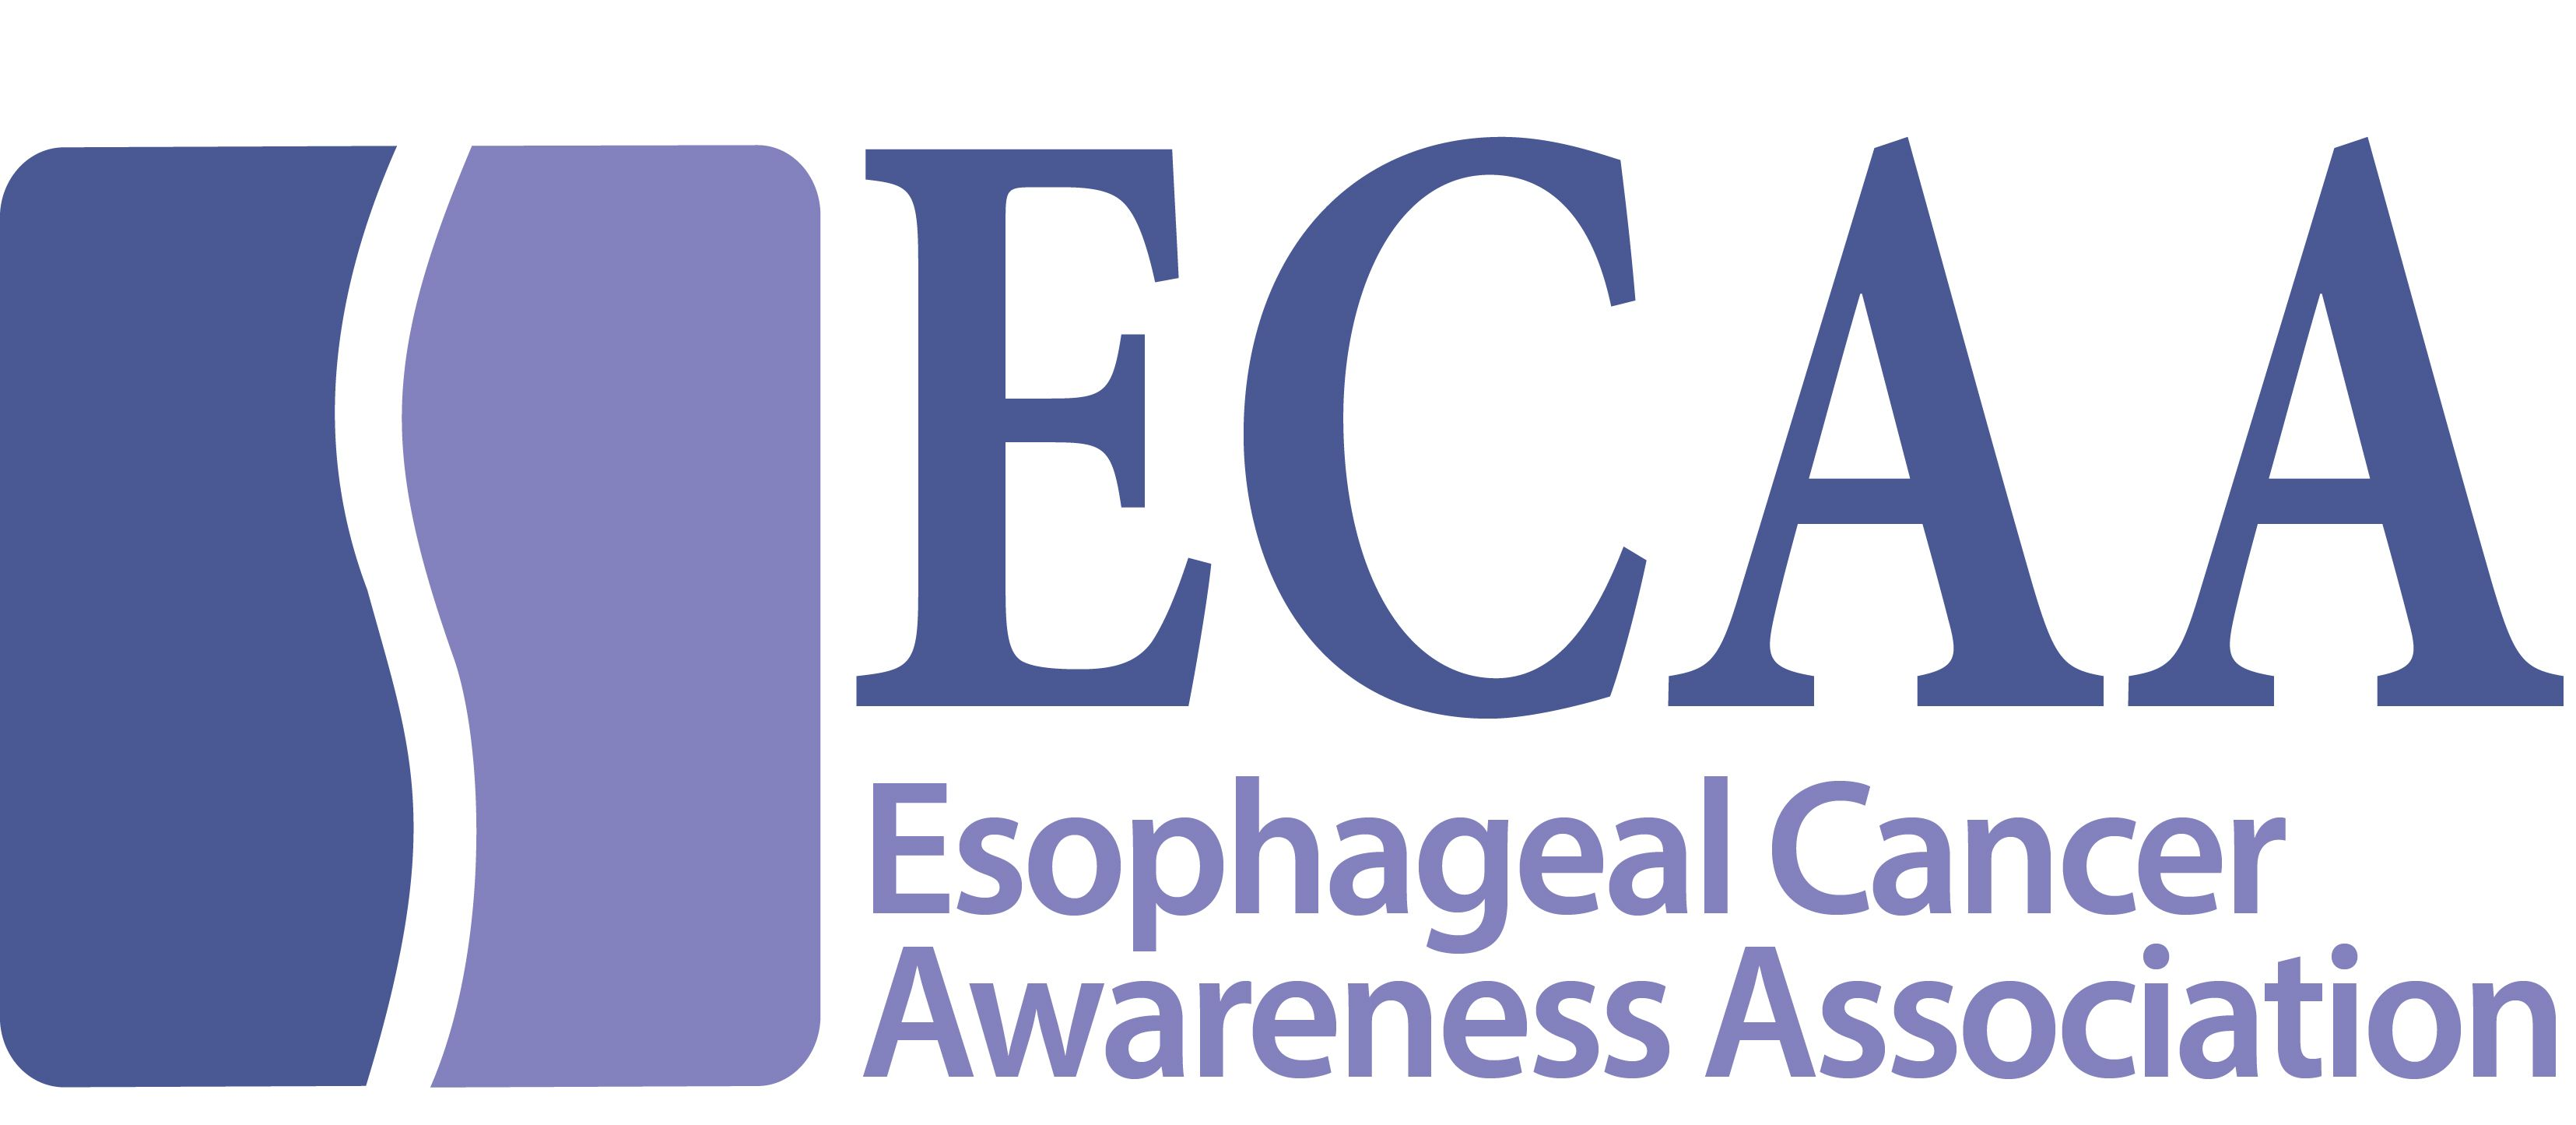 Esophageal Cancer Awareness Association